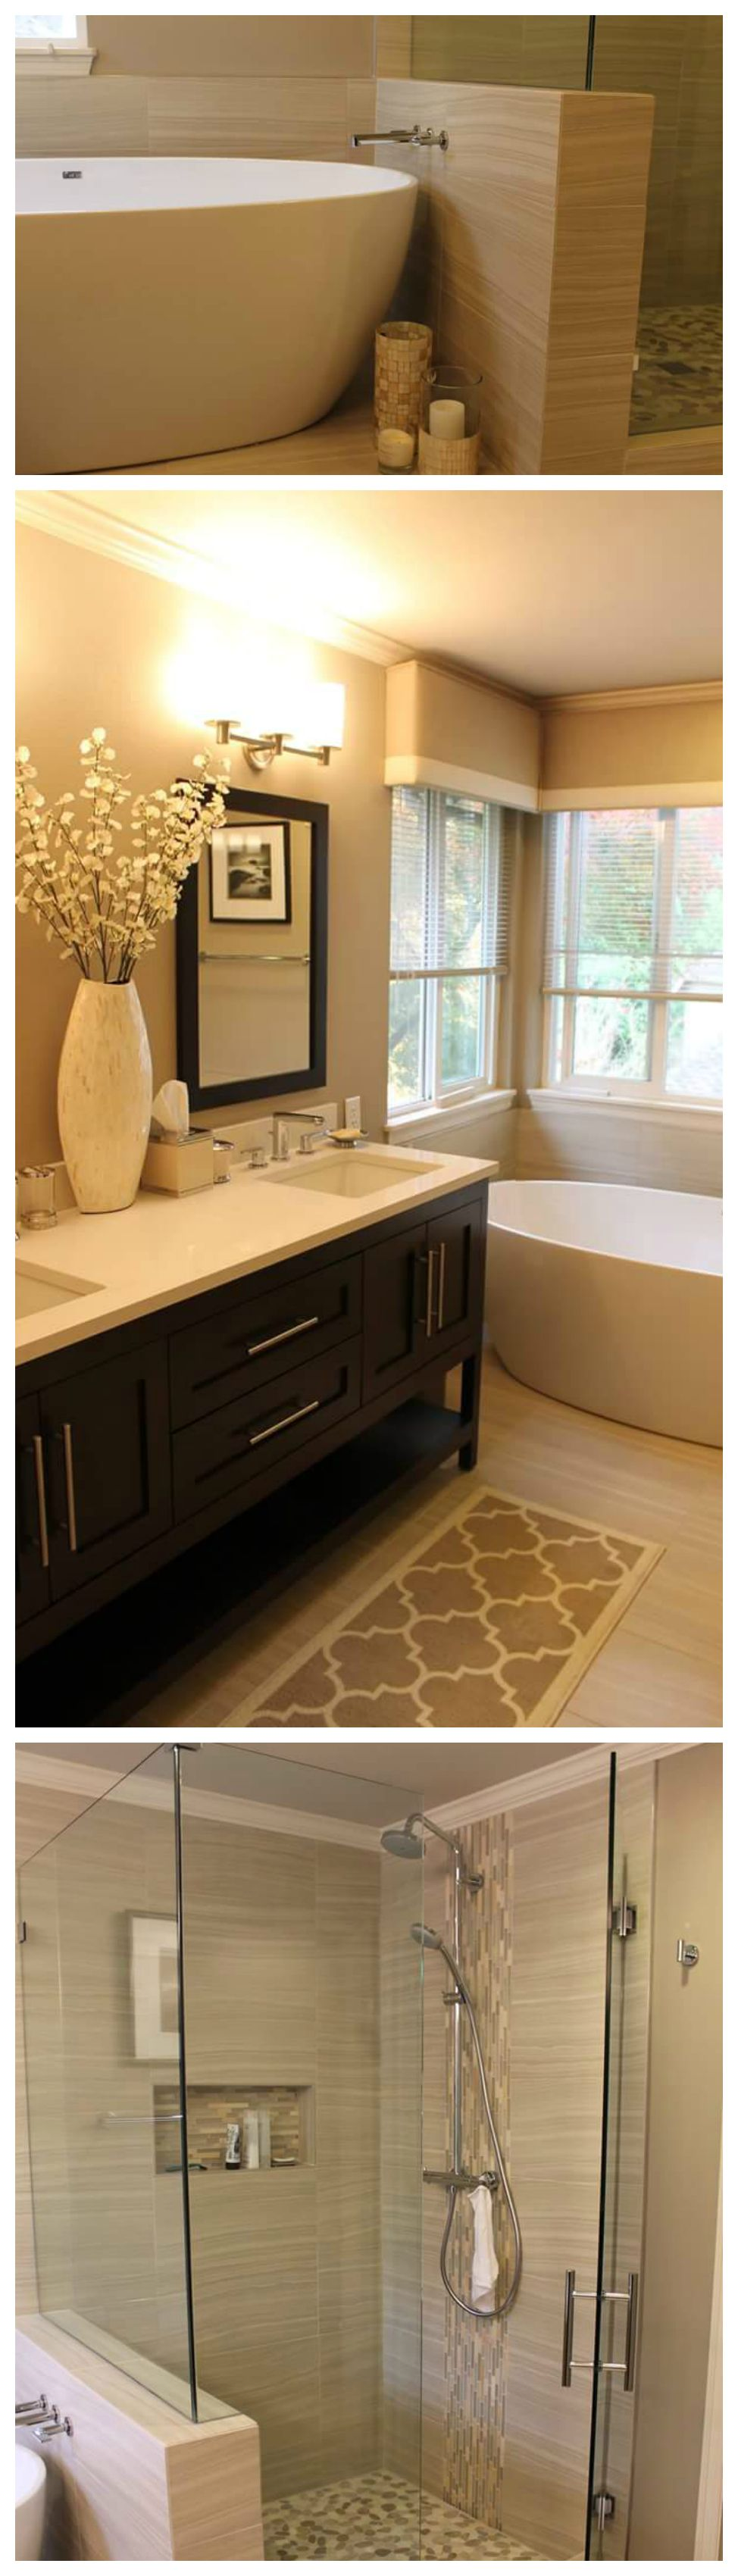 We Love The Warm Tones And Spa Like Feel Of This Bathroomremodel Home Home Remodeling House